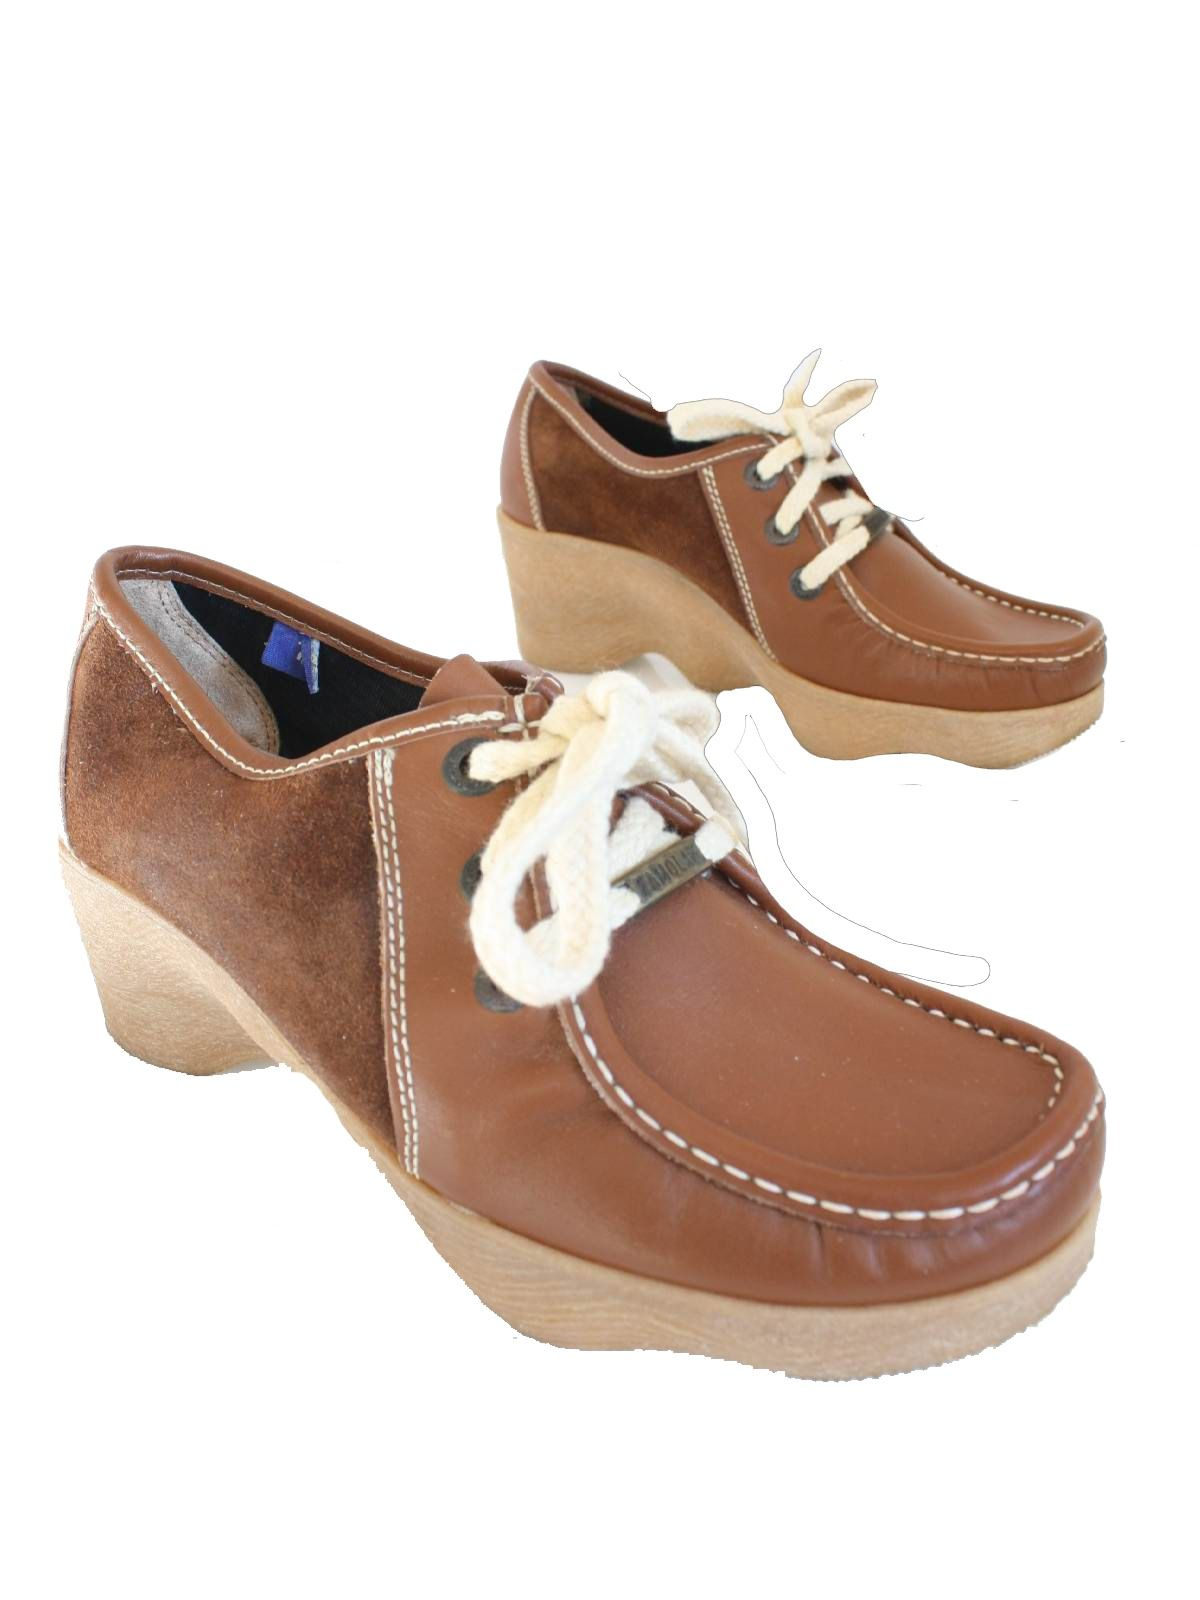 a14dbdcc3fb 1970 s Famolare Womens Suede Moccasin Shoes